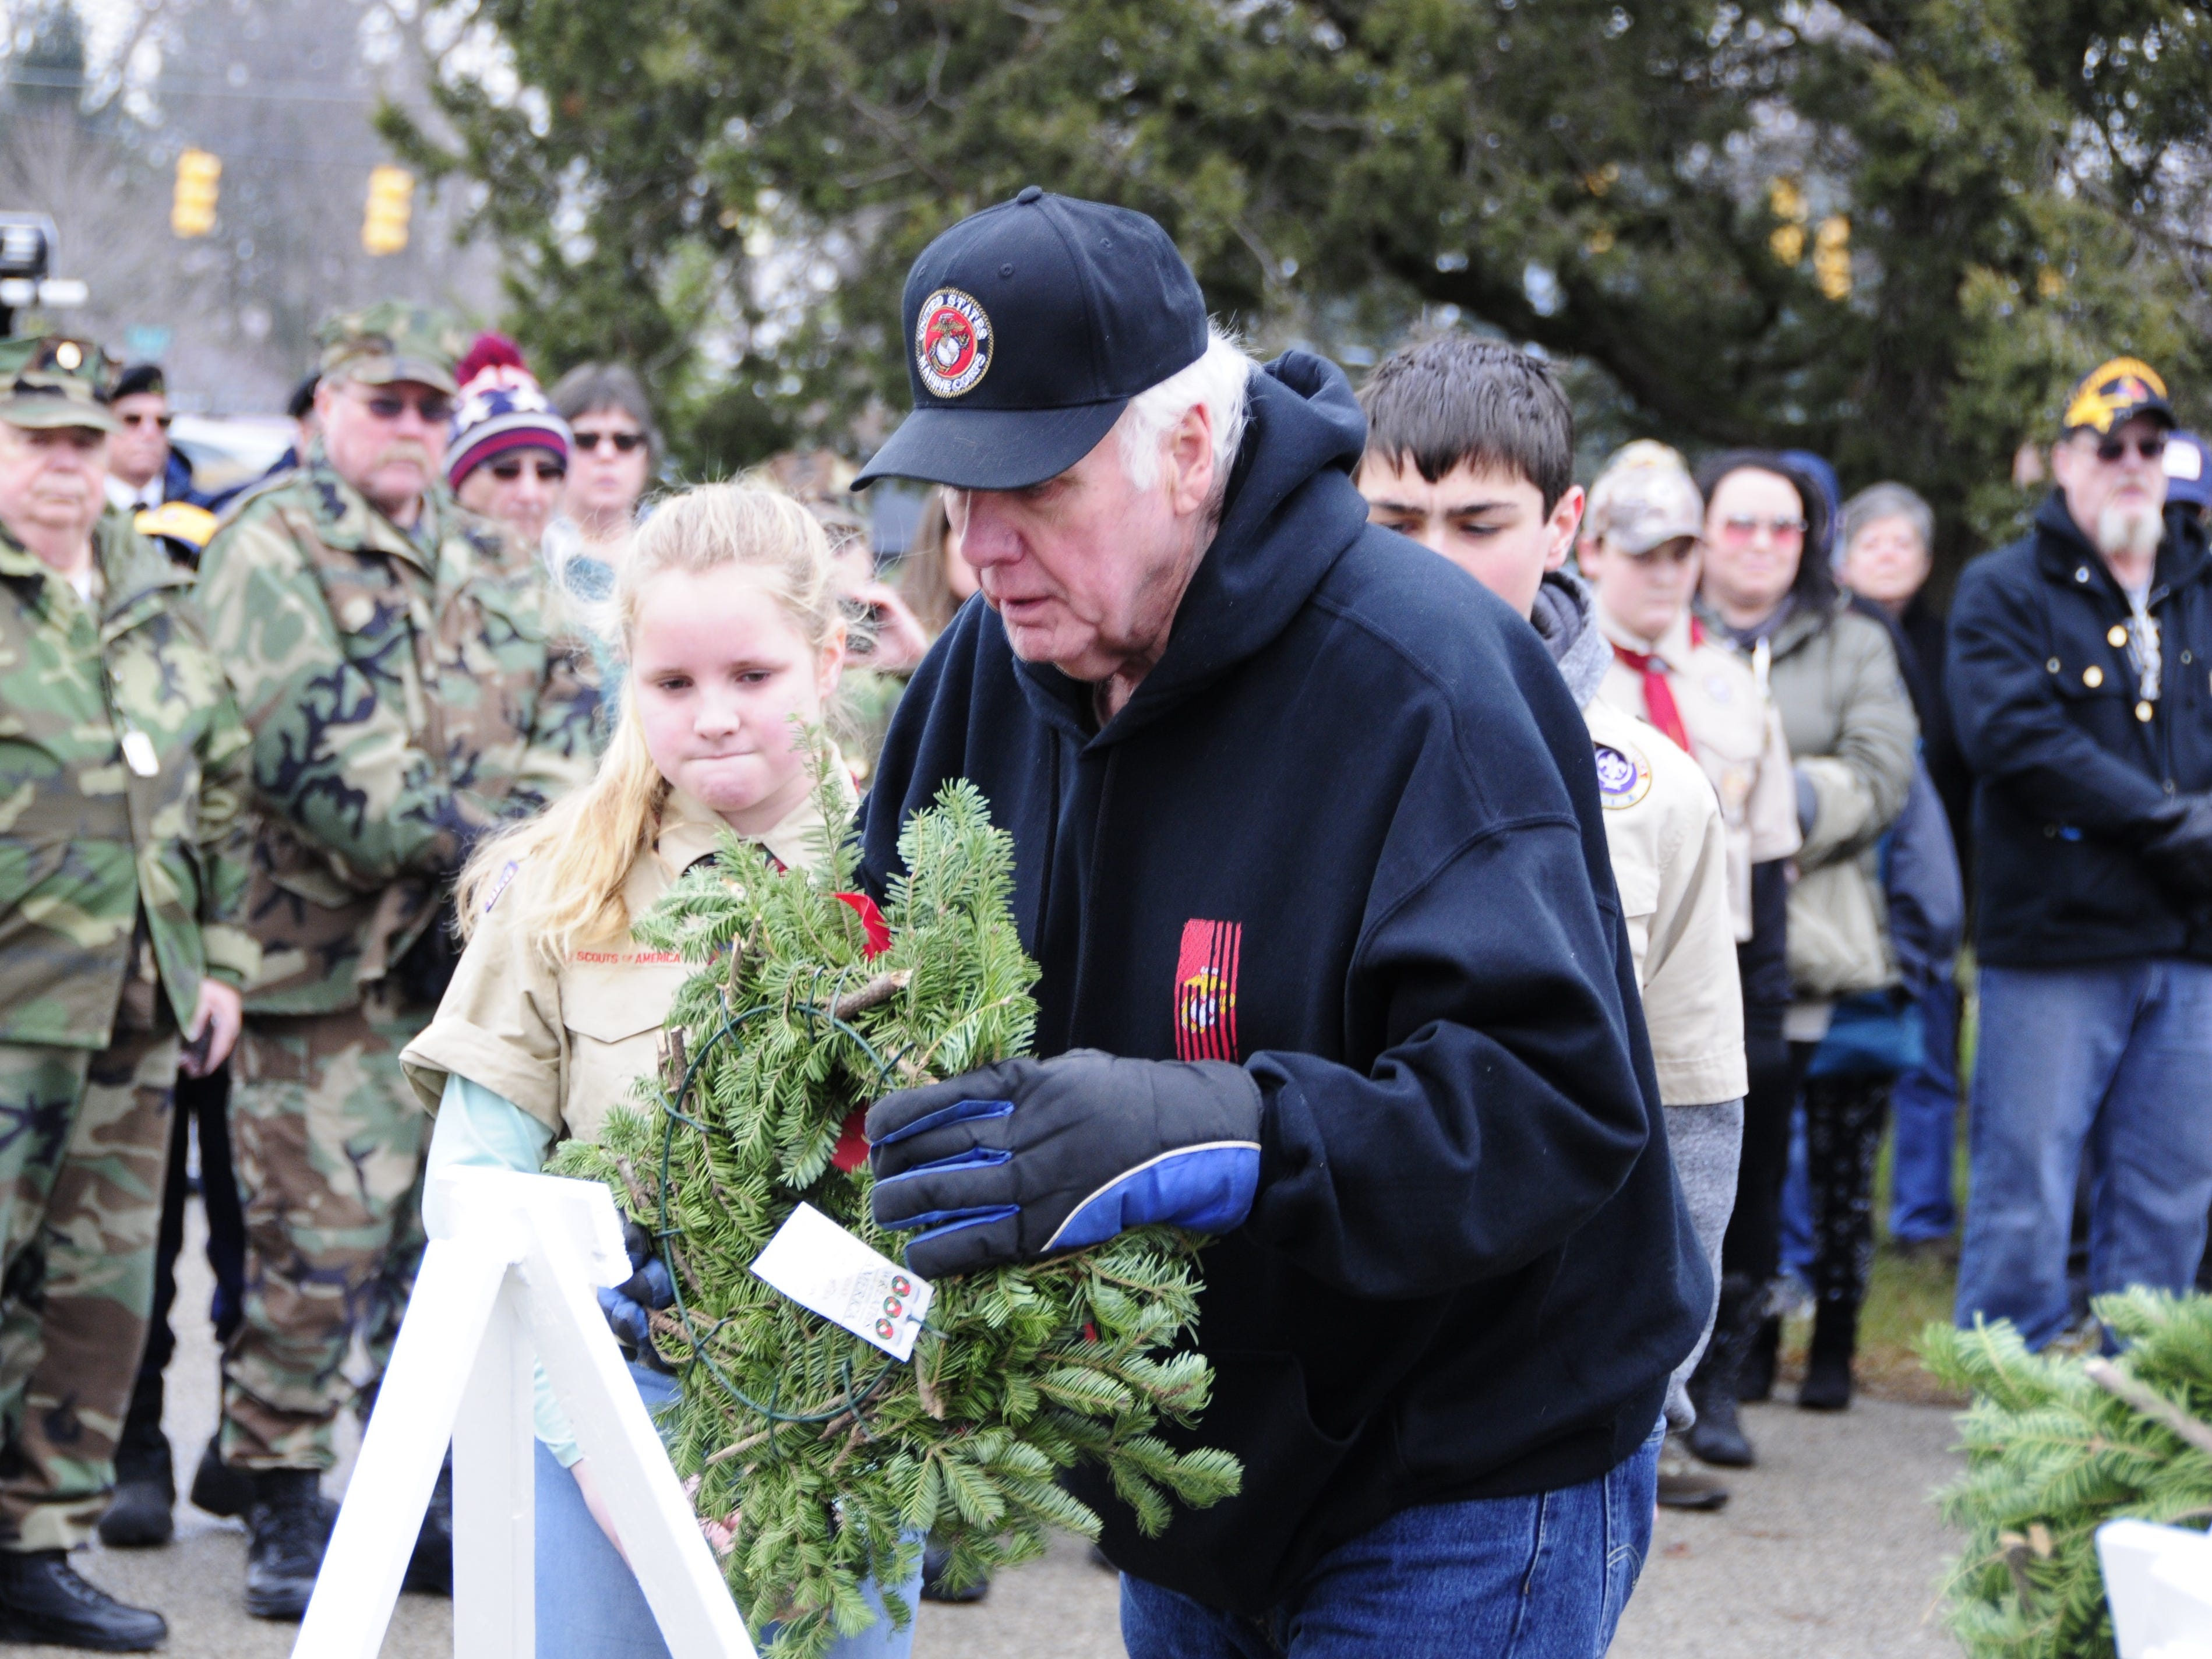 Bill Tucker places a wreath to honor the U.S. Marines during Wreaths Across America on Saturday, Dec. 15, 2018 at St. Clair County Allied Veterans Cemetery in Port Huron.